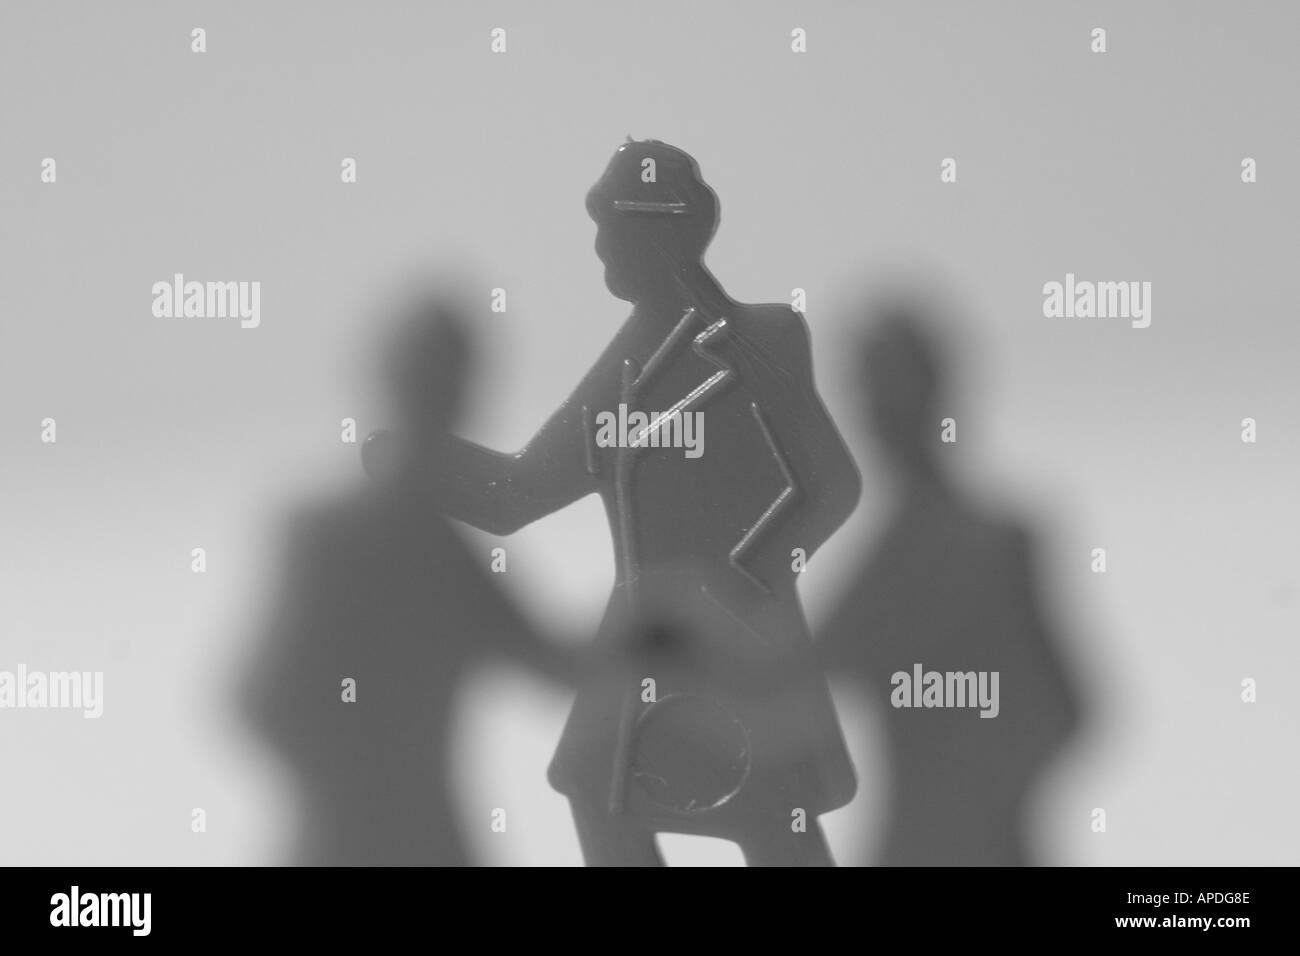 man in a crowd - Stock Image